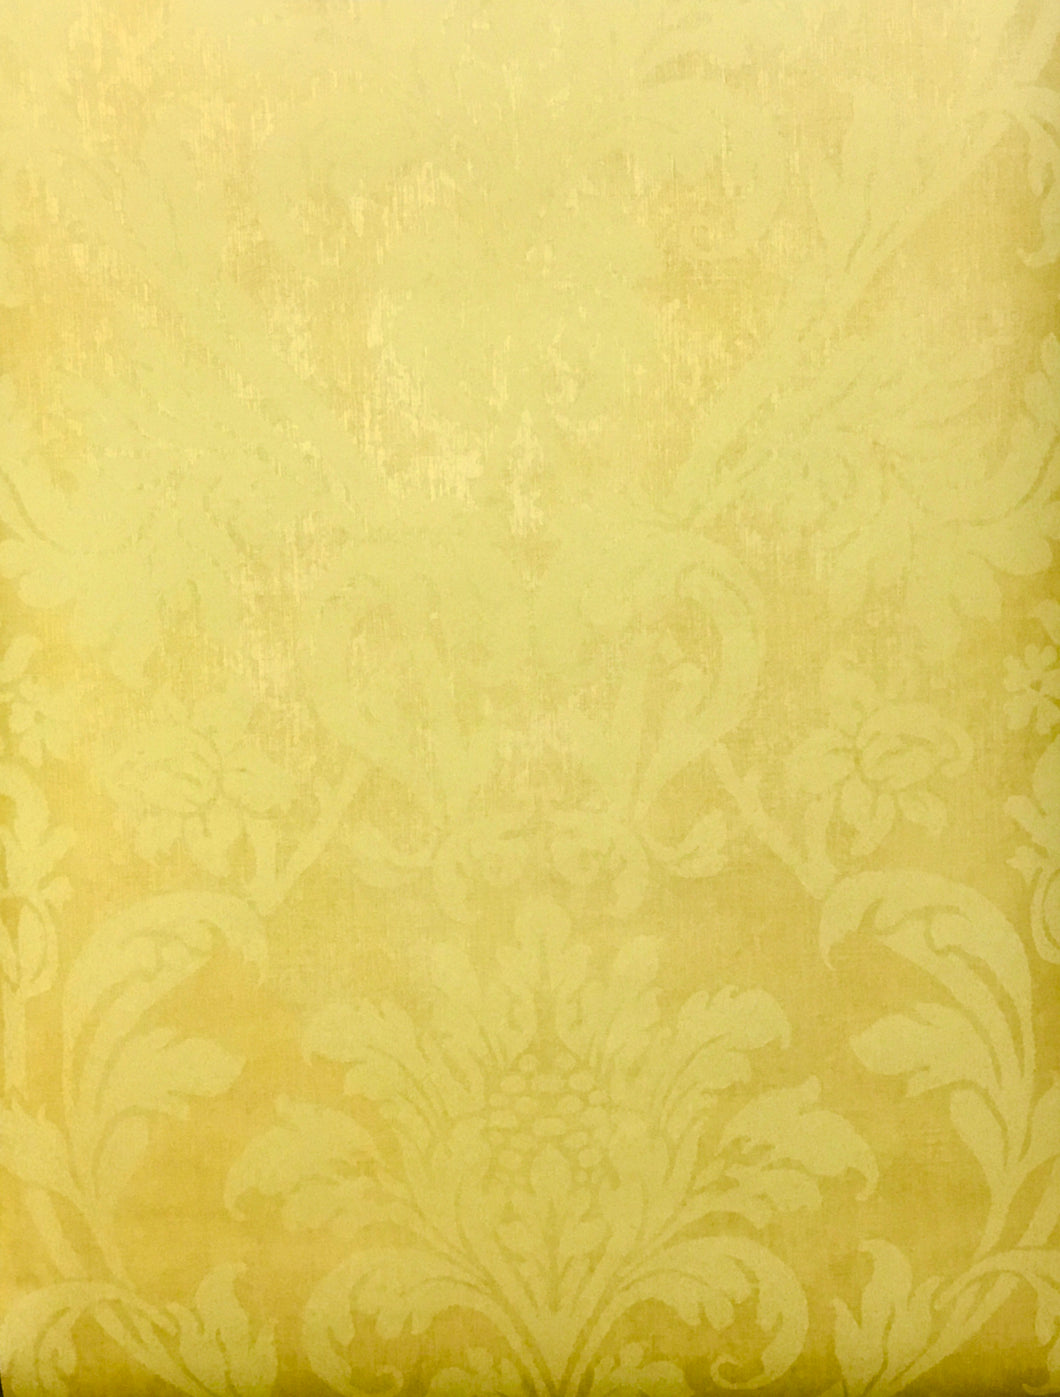 VL082202. Two tone yellow damask